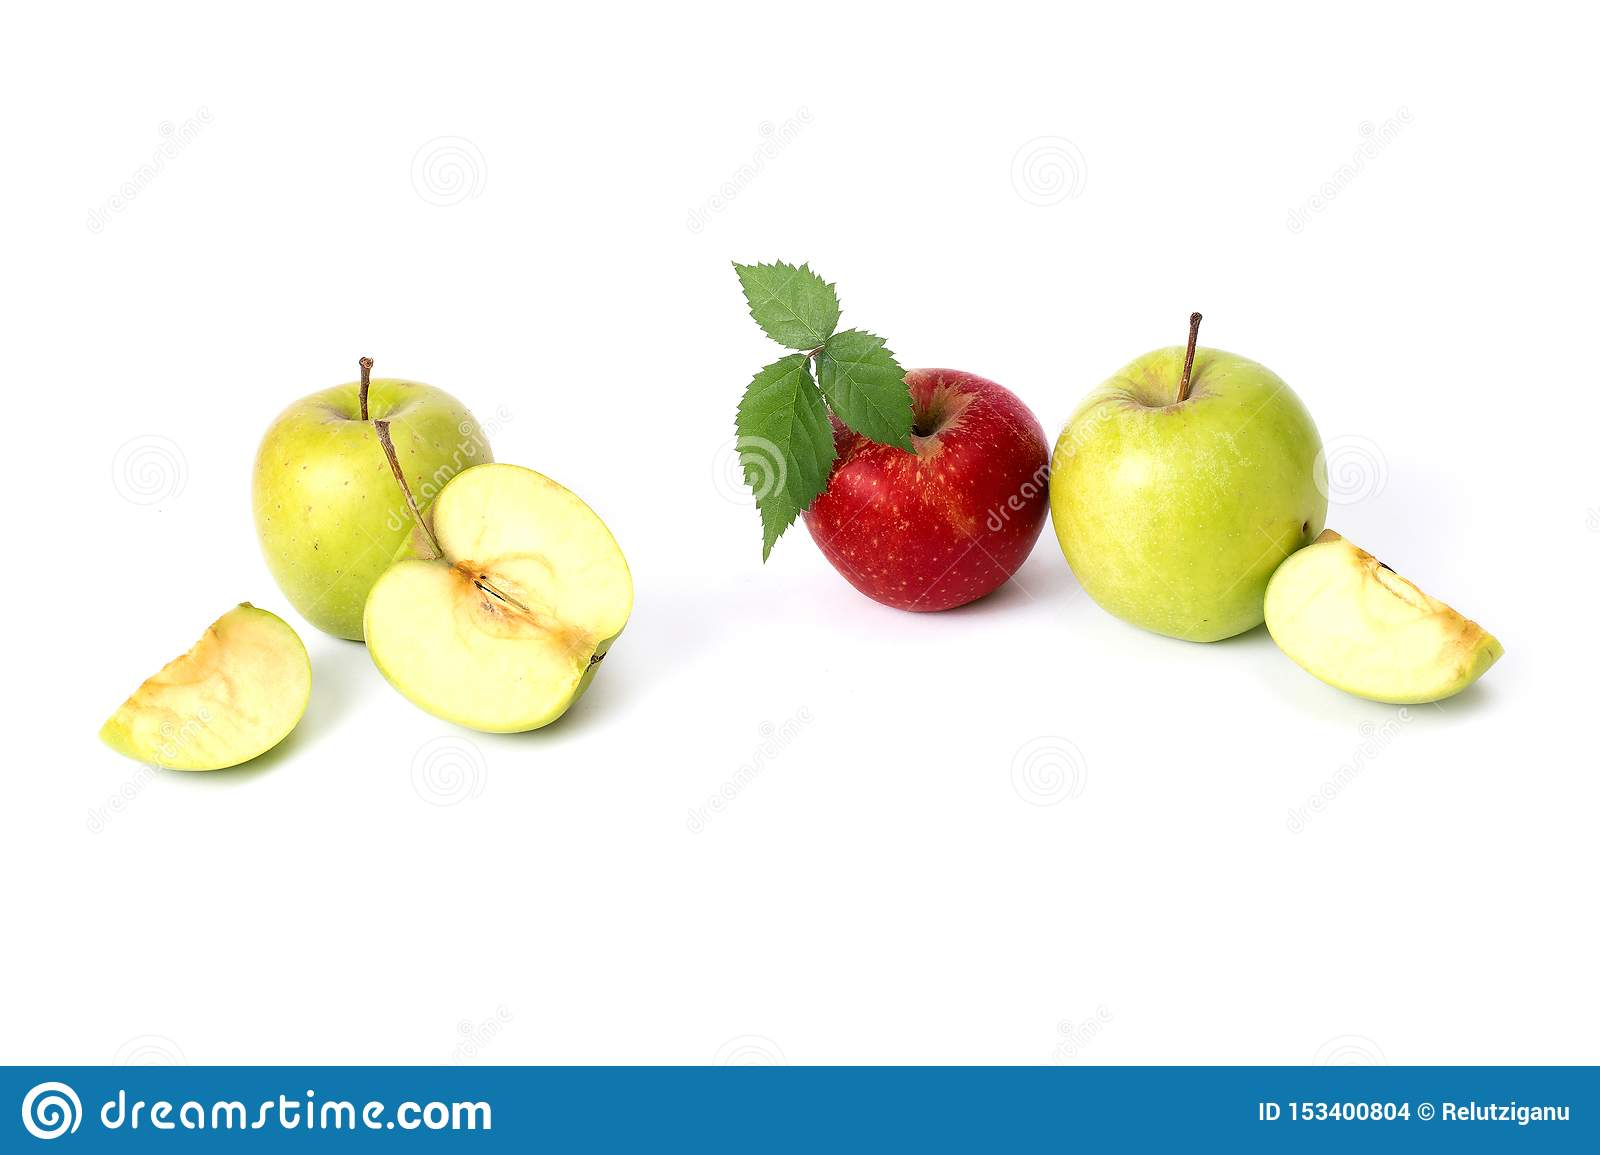 Red and green apples on a white background. Green and red juicy apples on an isolated background. A group of ripe apples on a whit